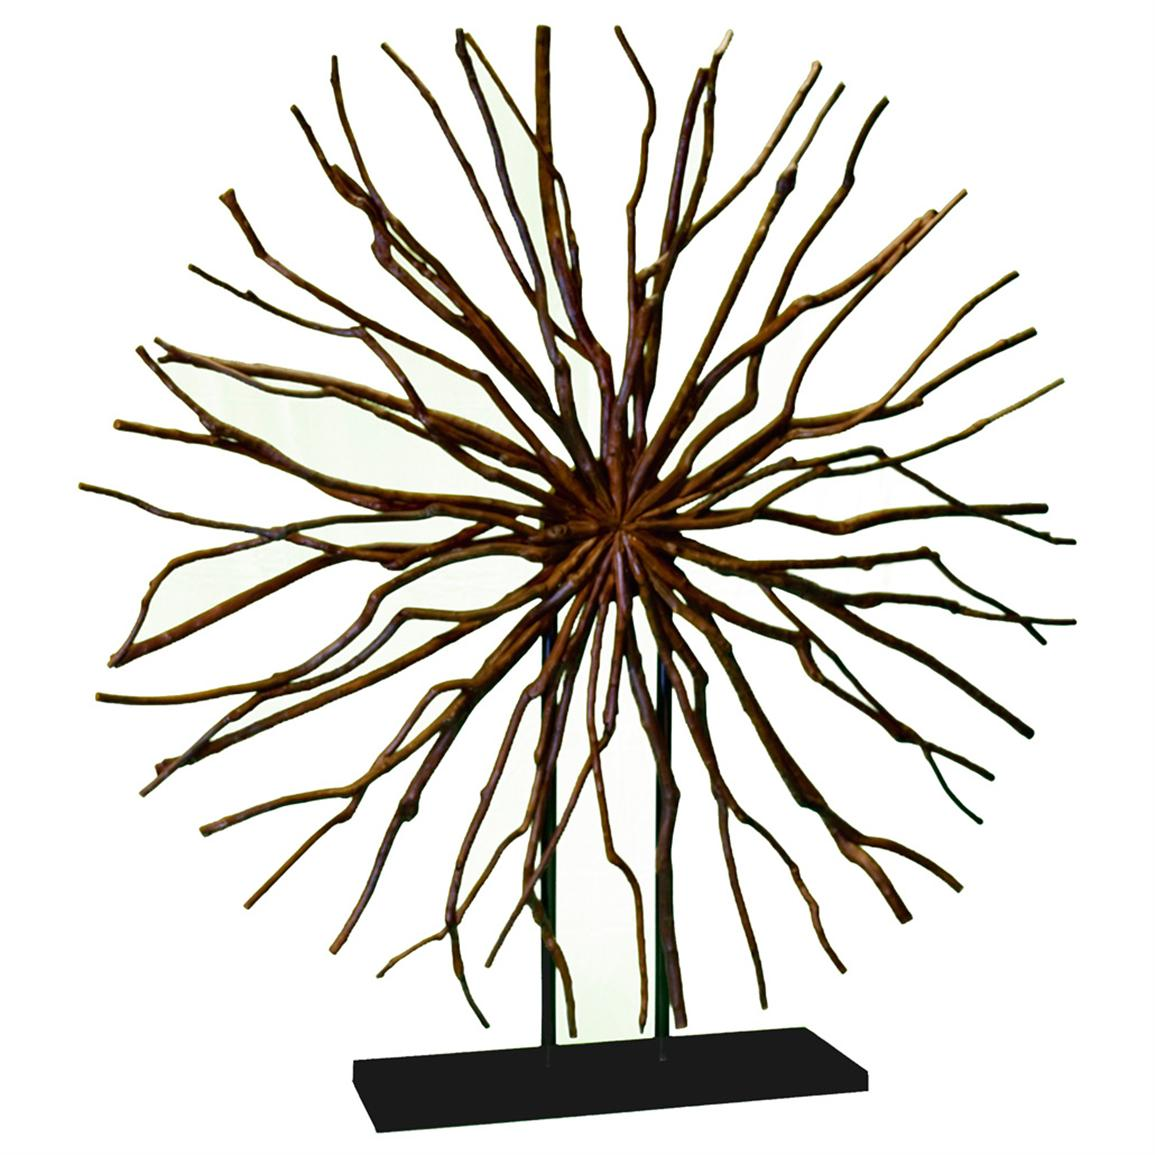 Groovystuff® Antares On Stand, Large, Natural